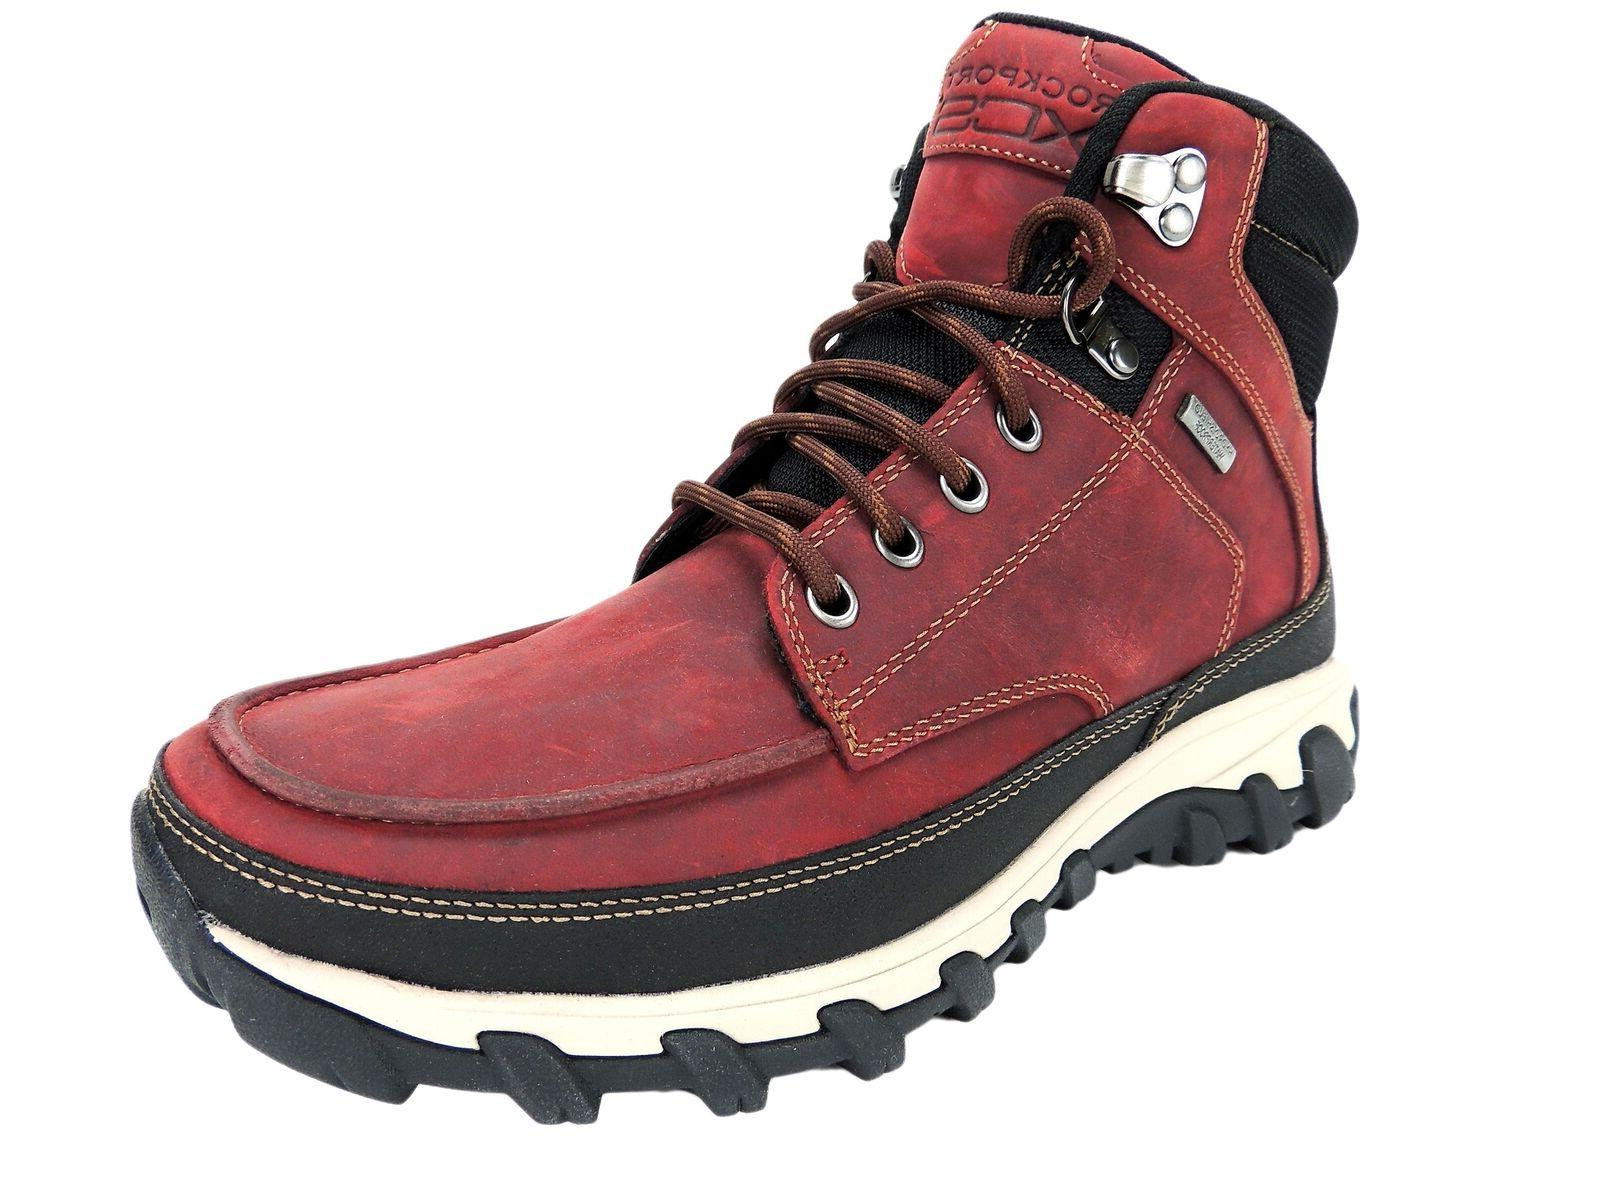 Rockport Men's Cold Springs Plus Moc Toe Snow Boots Red Leat